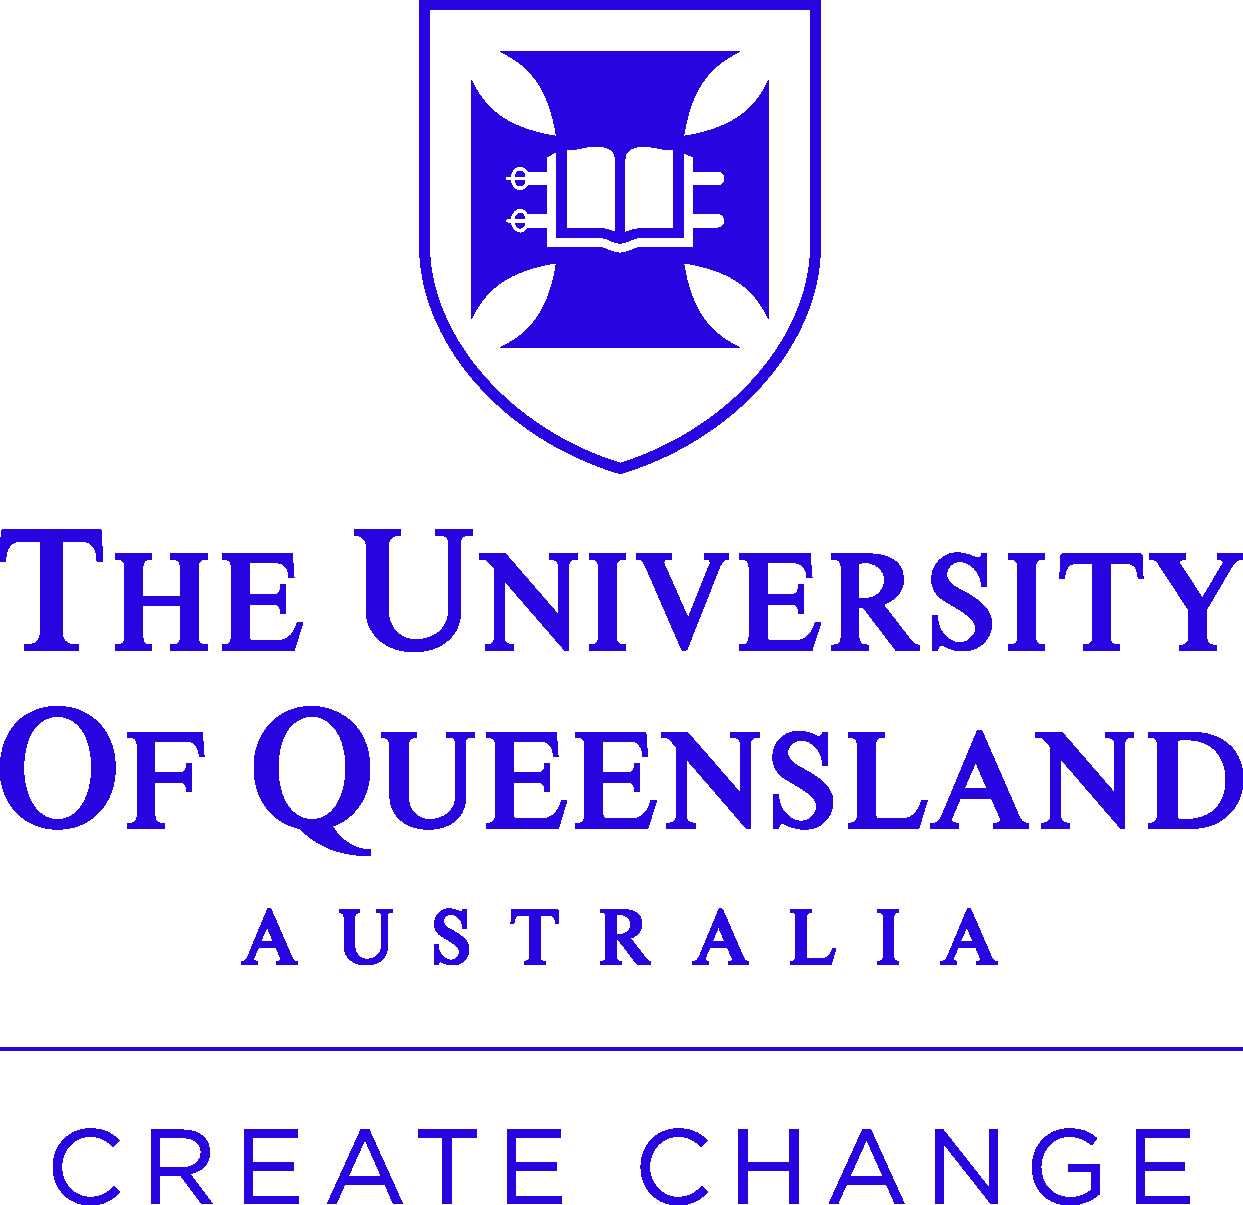 The University of Queensland's Institute of Continuing & TESOL Education